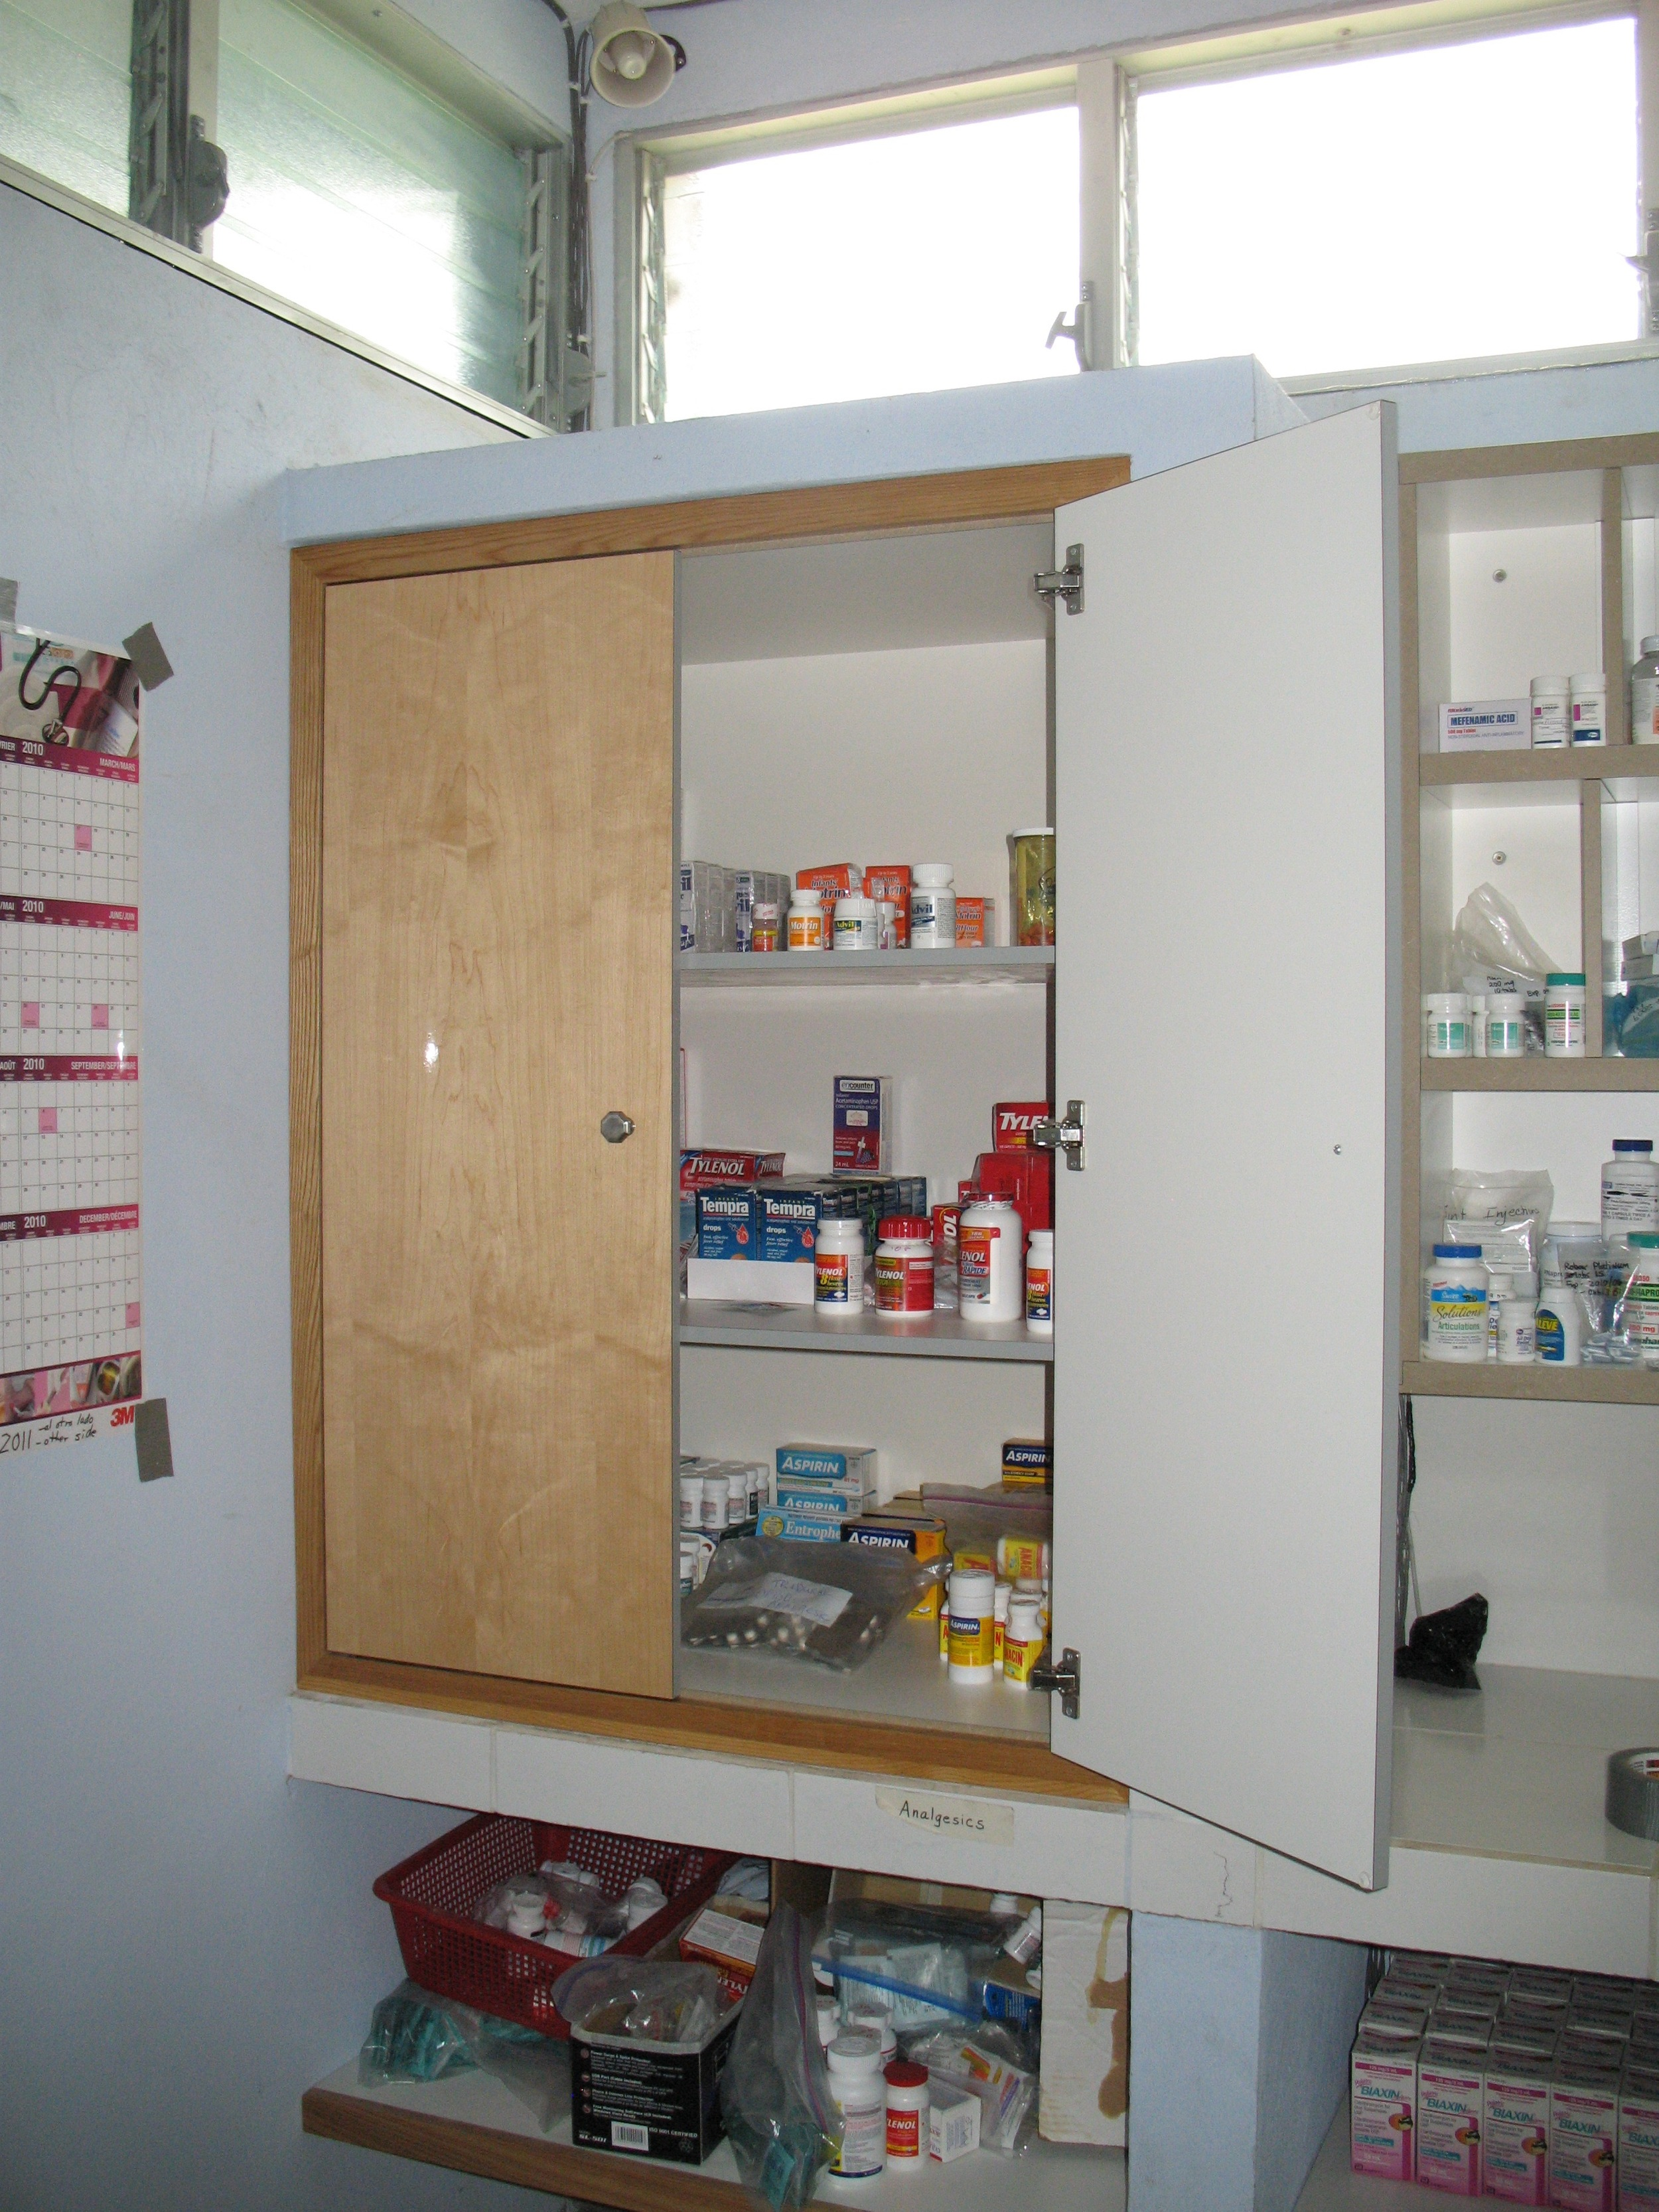 Lockable medicine cabinet